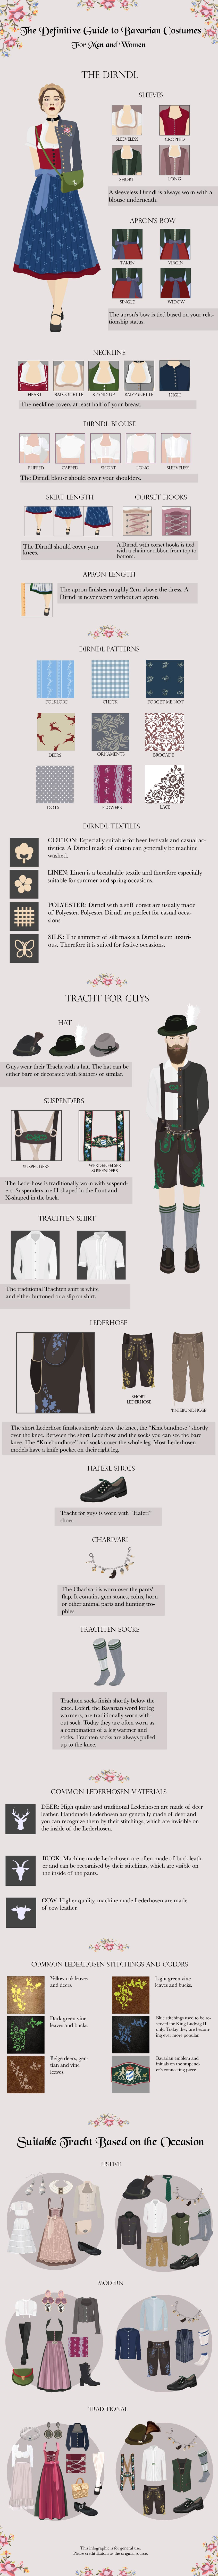 Definitive Guide To Classic Bavarian Costumes